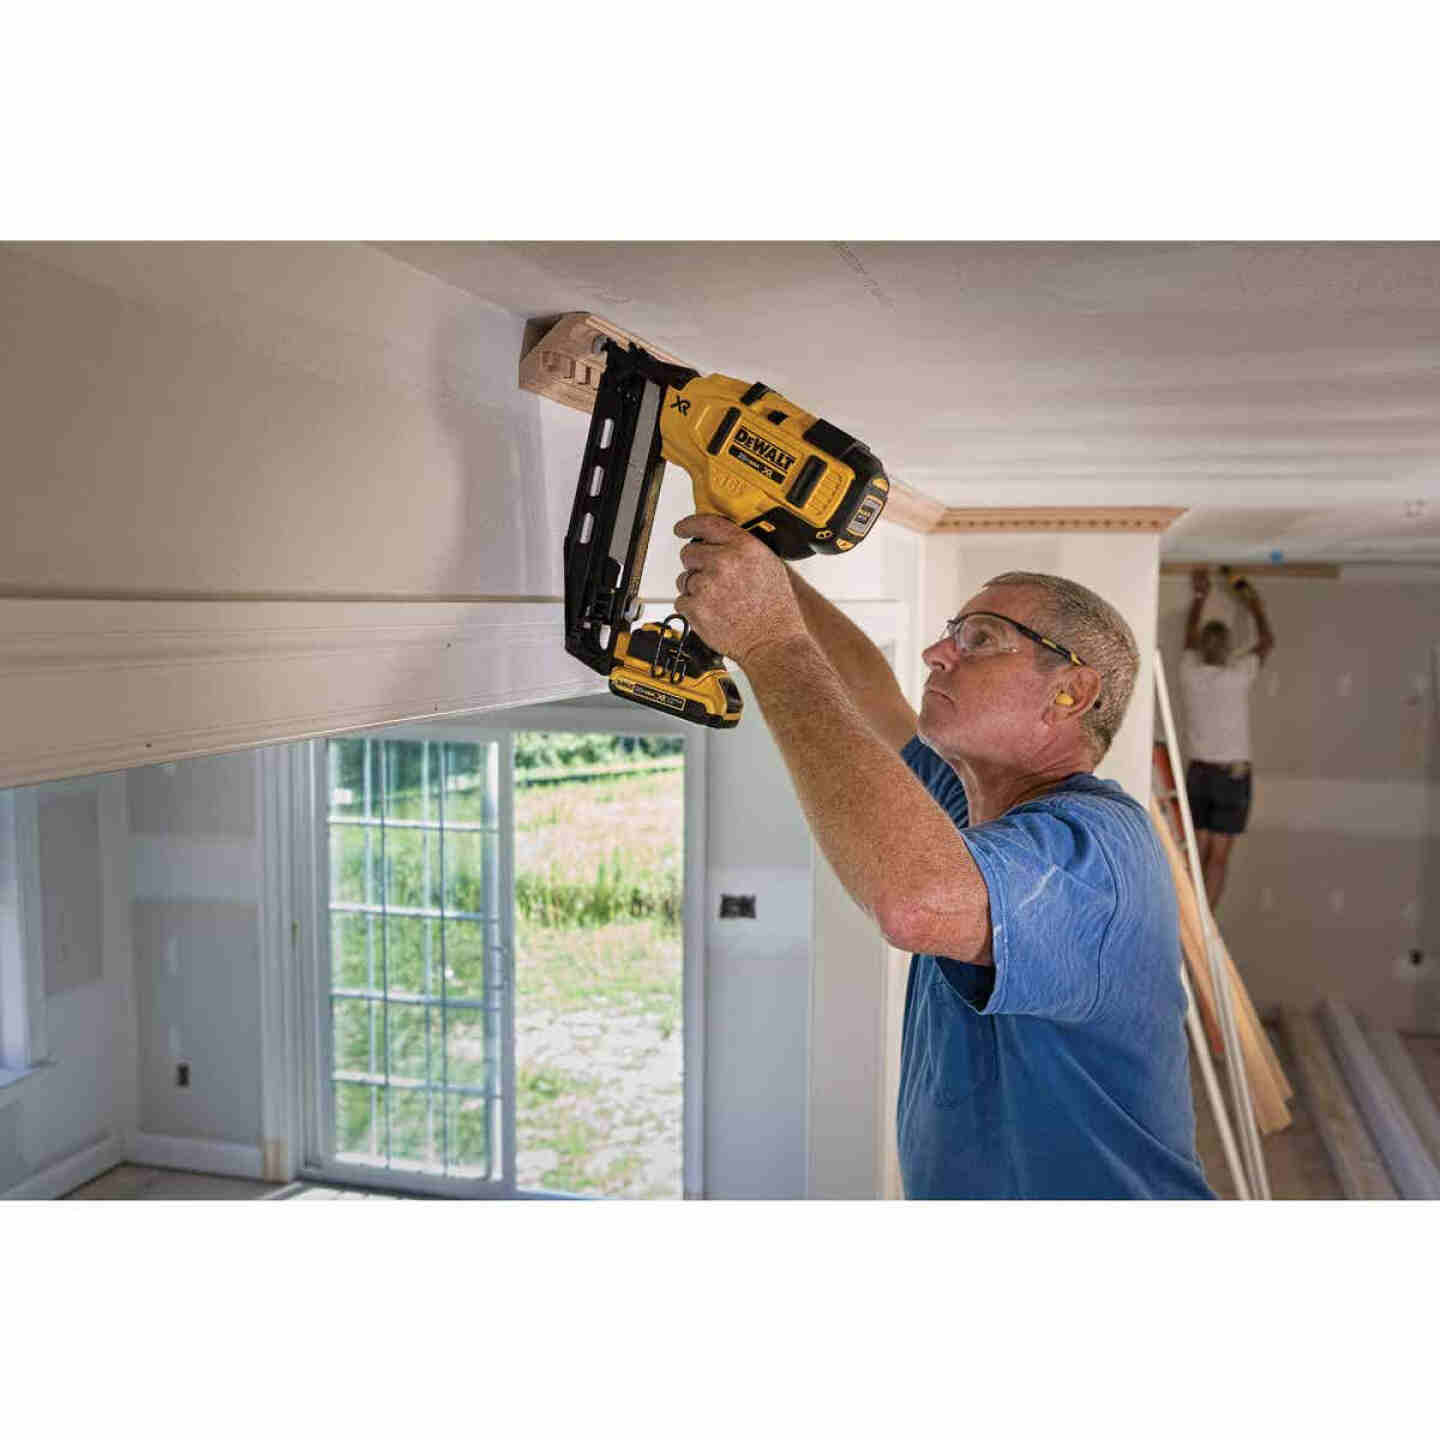 DeWalt 20 Volt MAX XR Lithium-Ion 16-Gauge 2-1/2 In. Angled Cordless Finish Nailer Kit Image 2